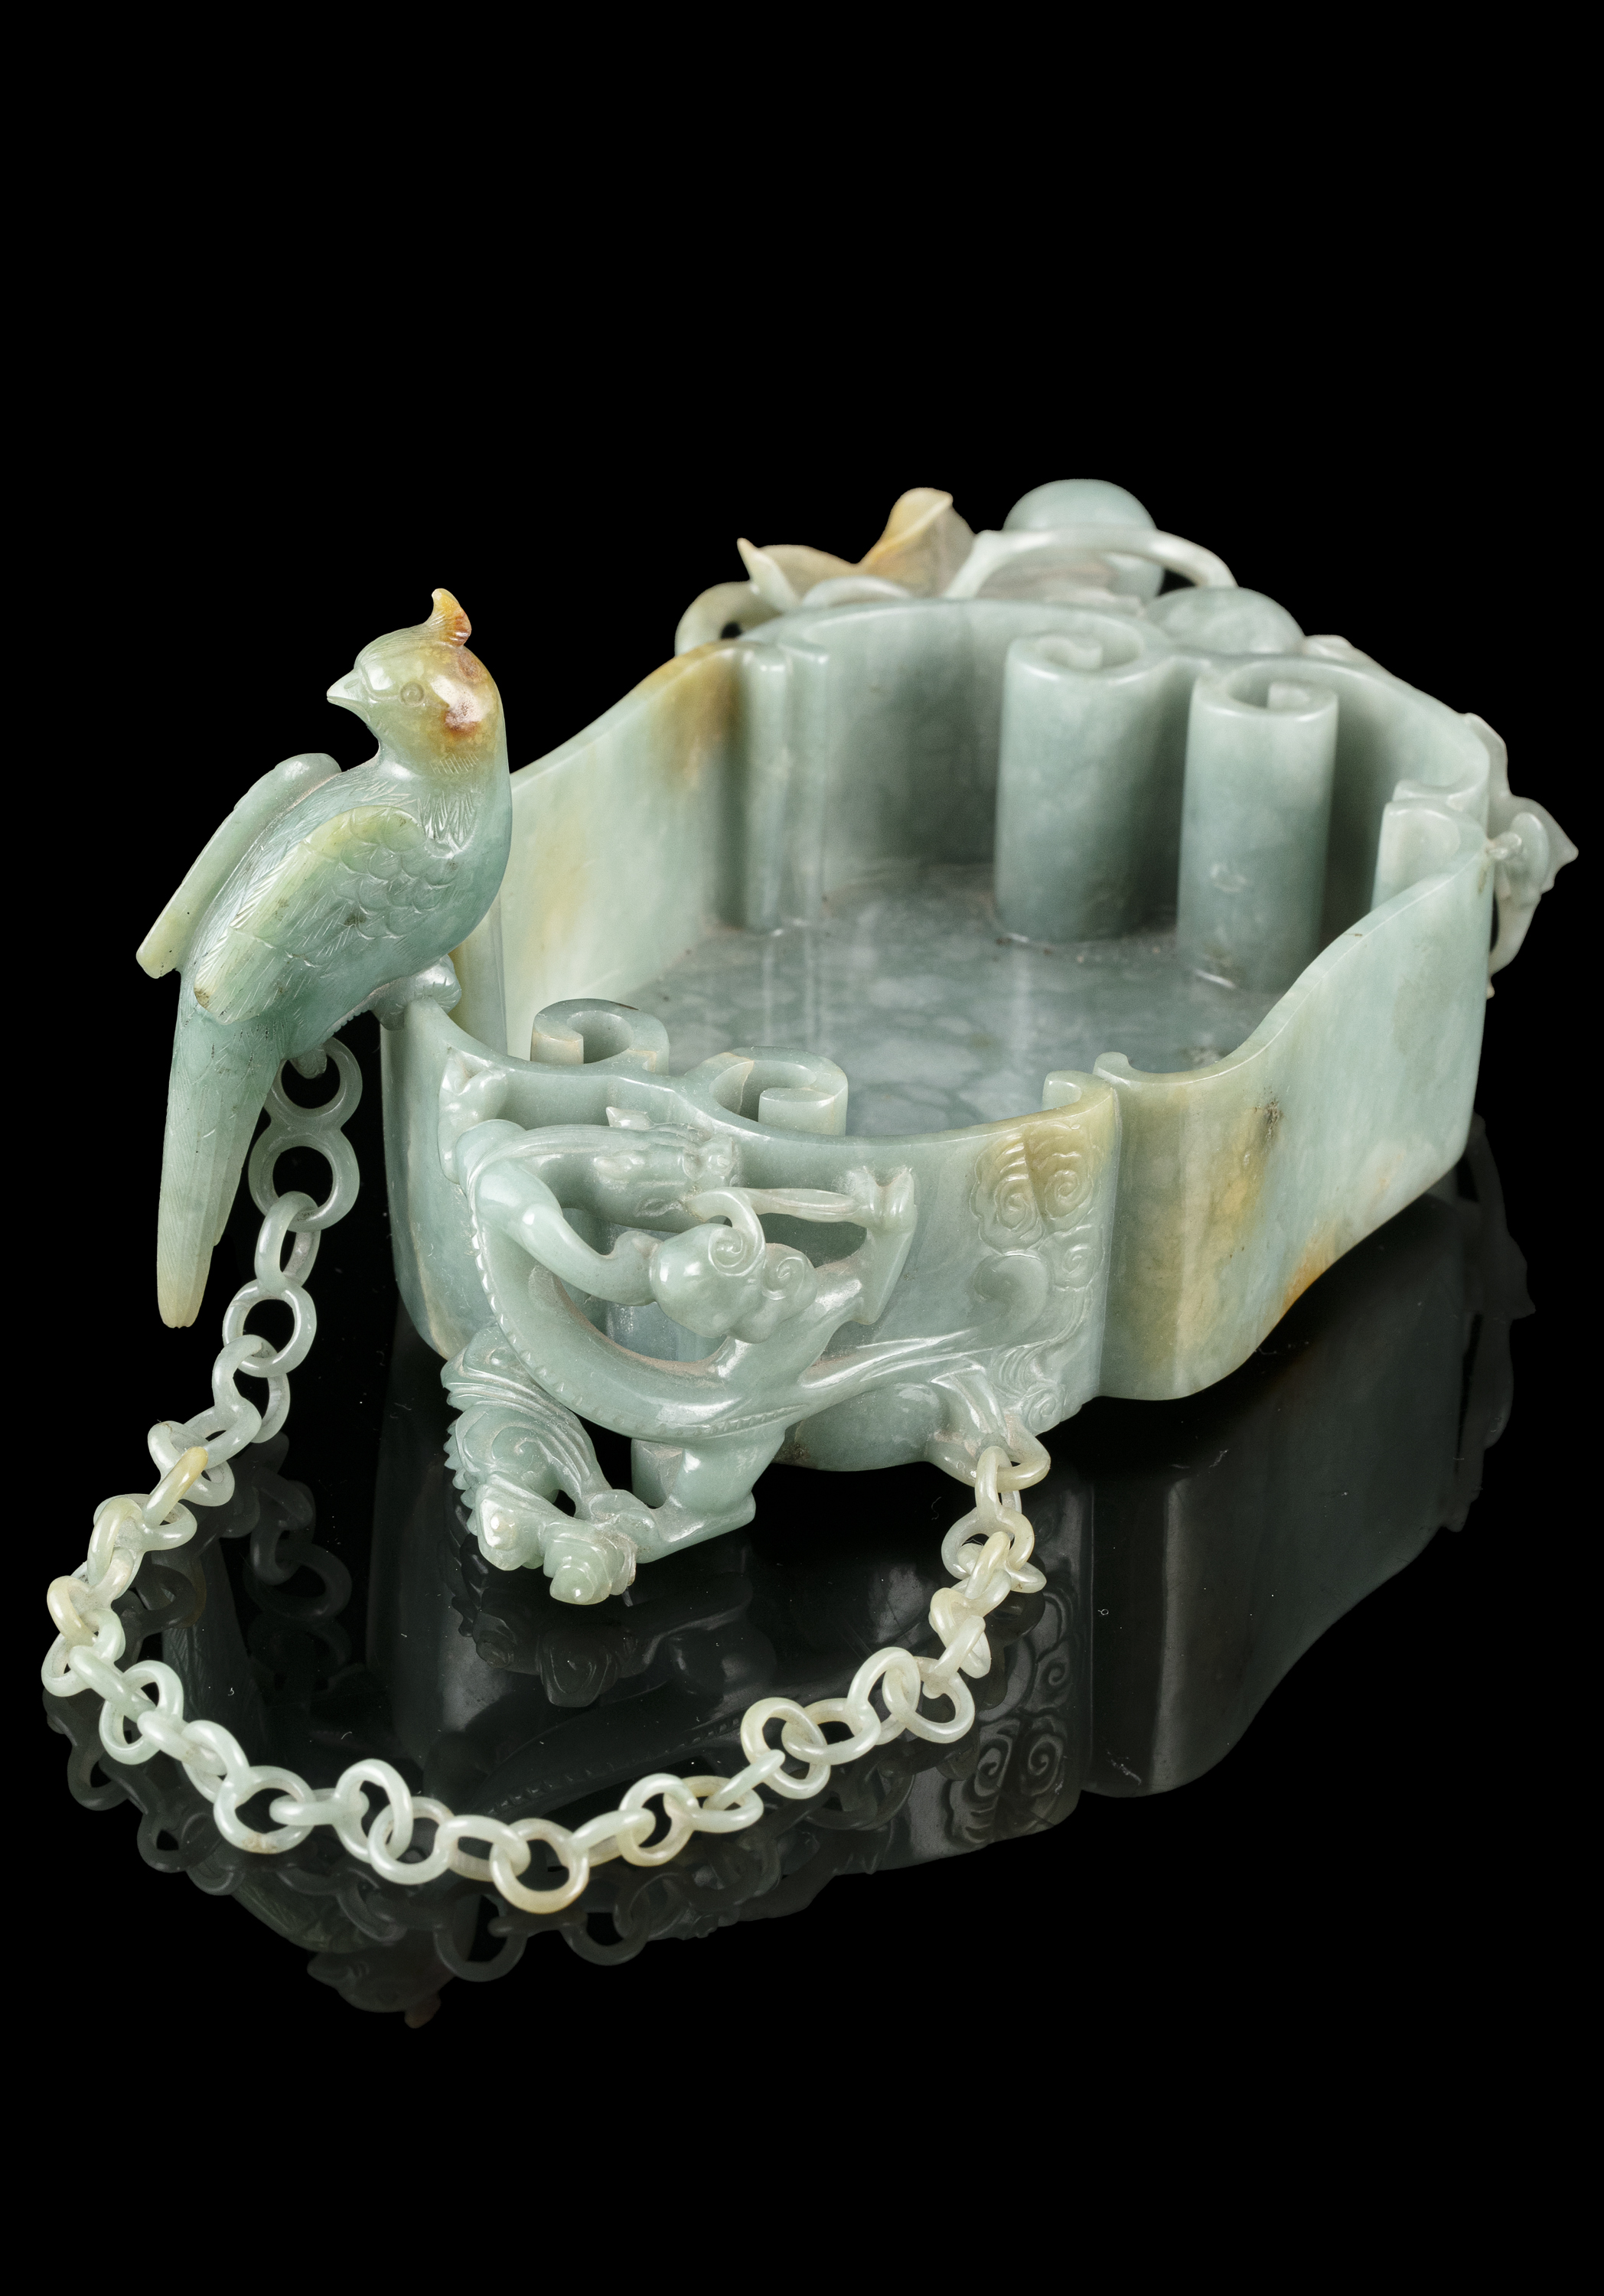 A LINGZHI-SHAPED JADEITE JADE BRUSHWASHER WITH A PARROT China, Qing Dynasty, 19th century - Image 9 of 35